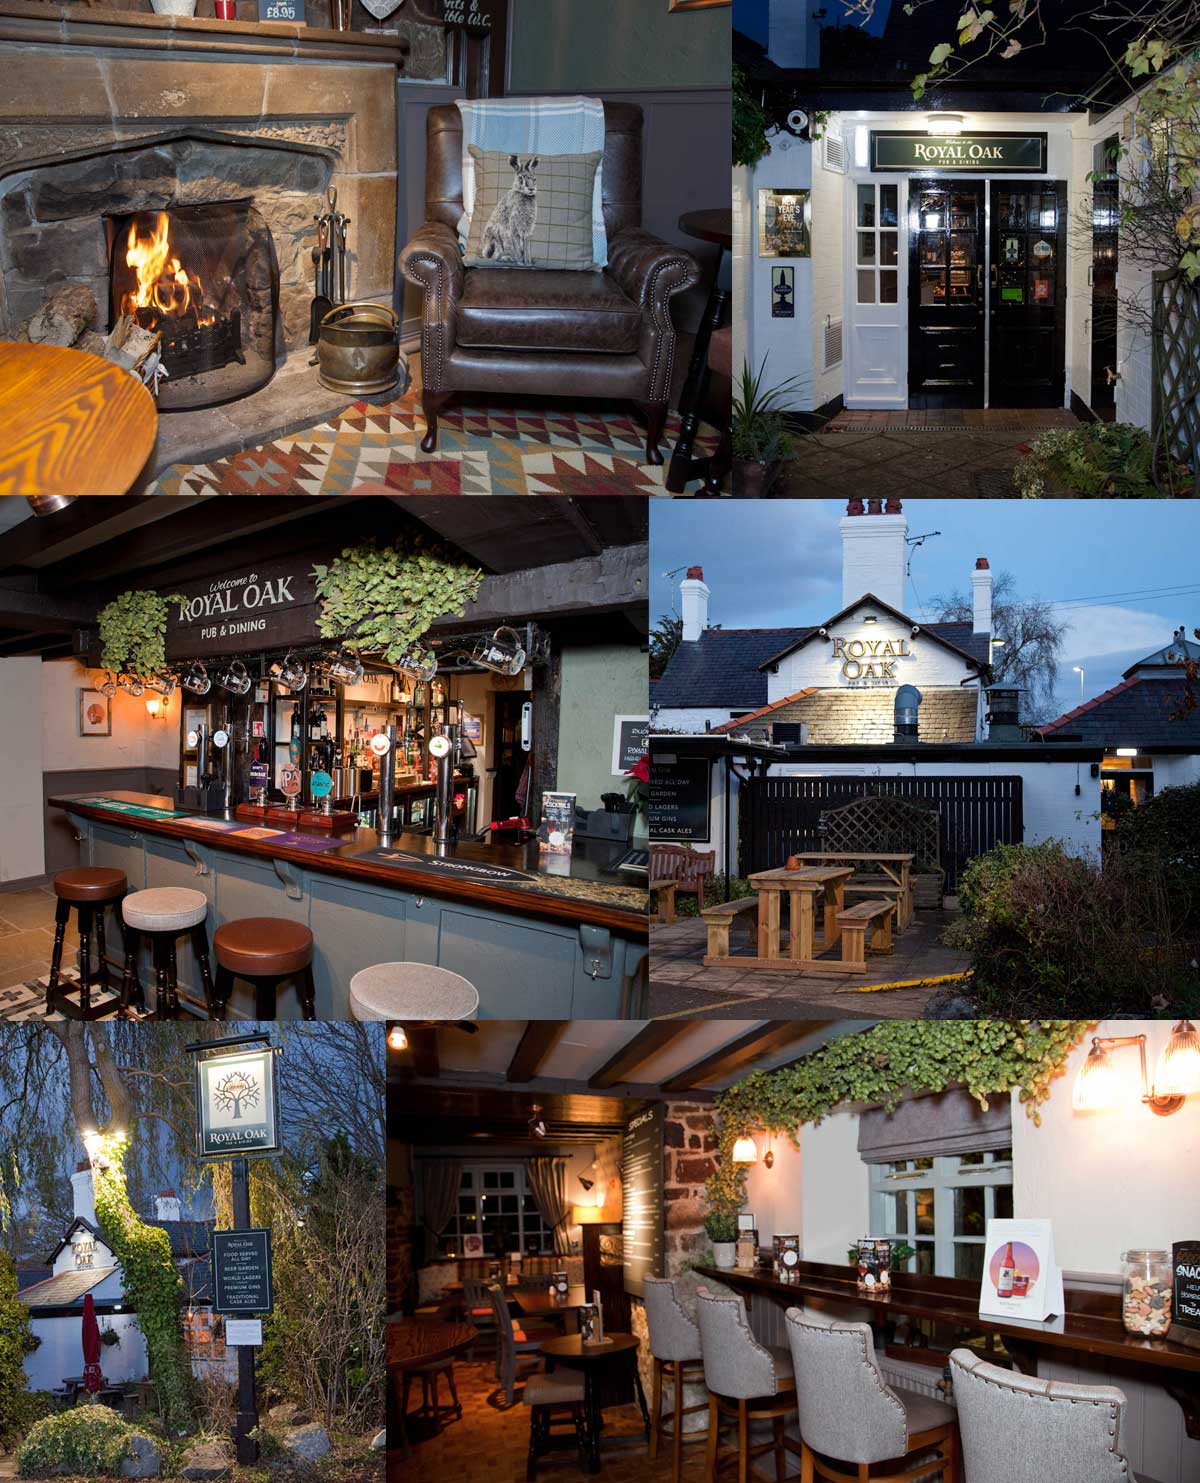 Cosy atmosphere at The Royal Oak